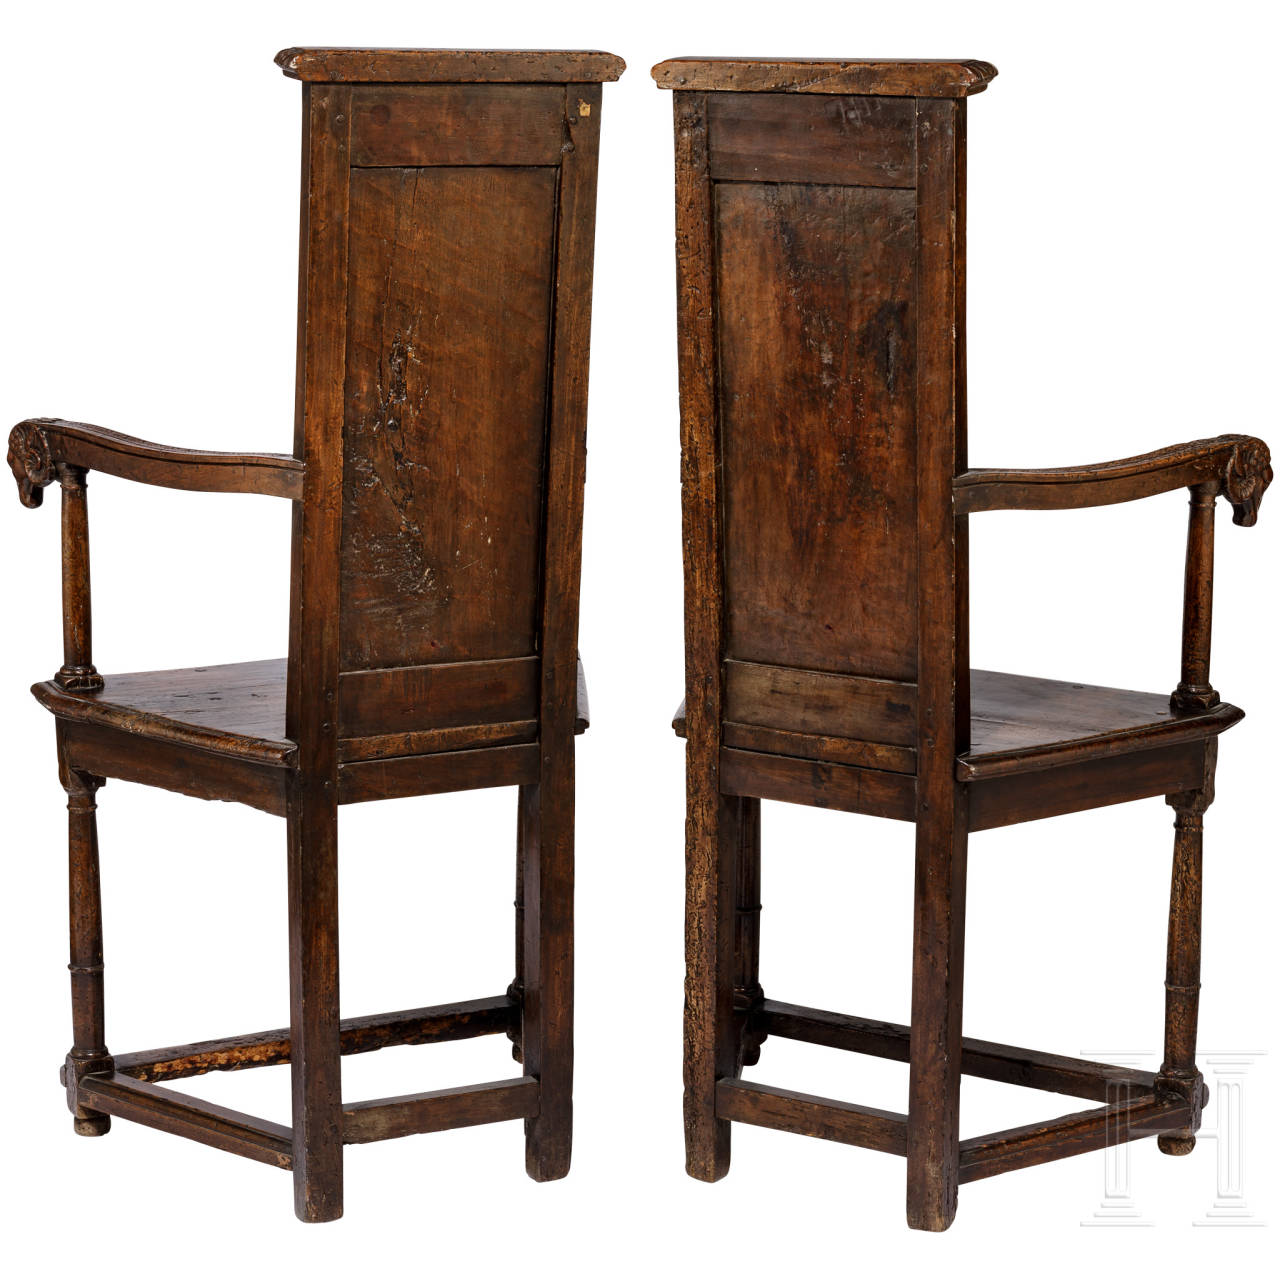 A rare pair of Renaissance armchairs, known as caquetoire chairs, Loire region/France, 2nd half of the 16th century